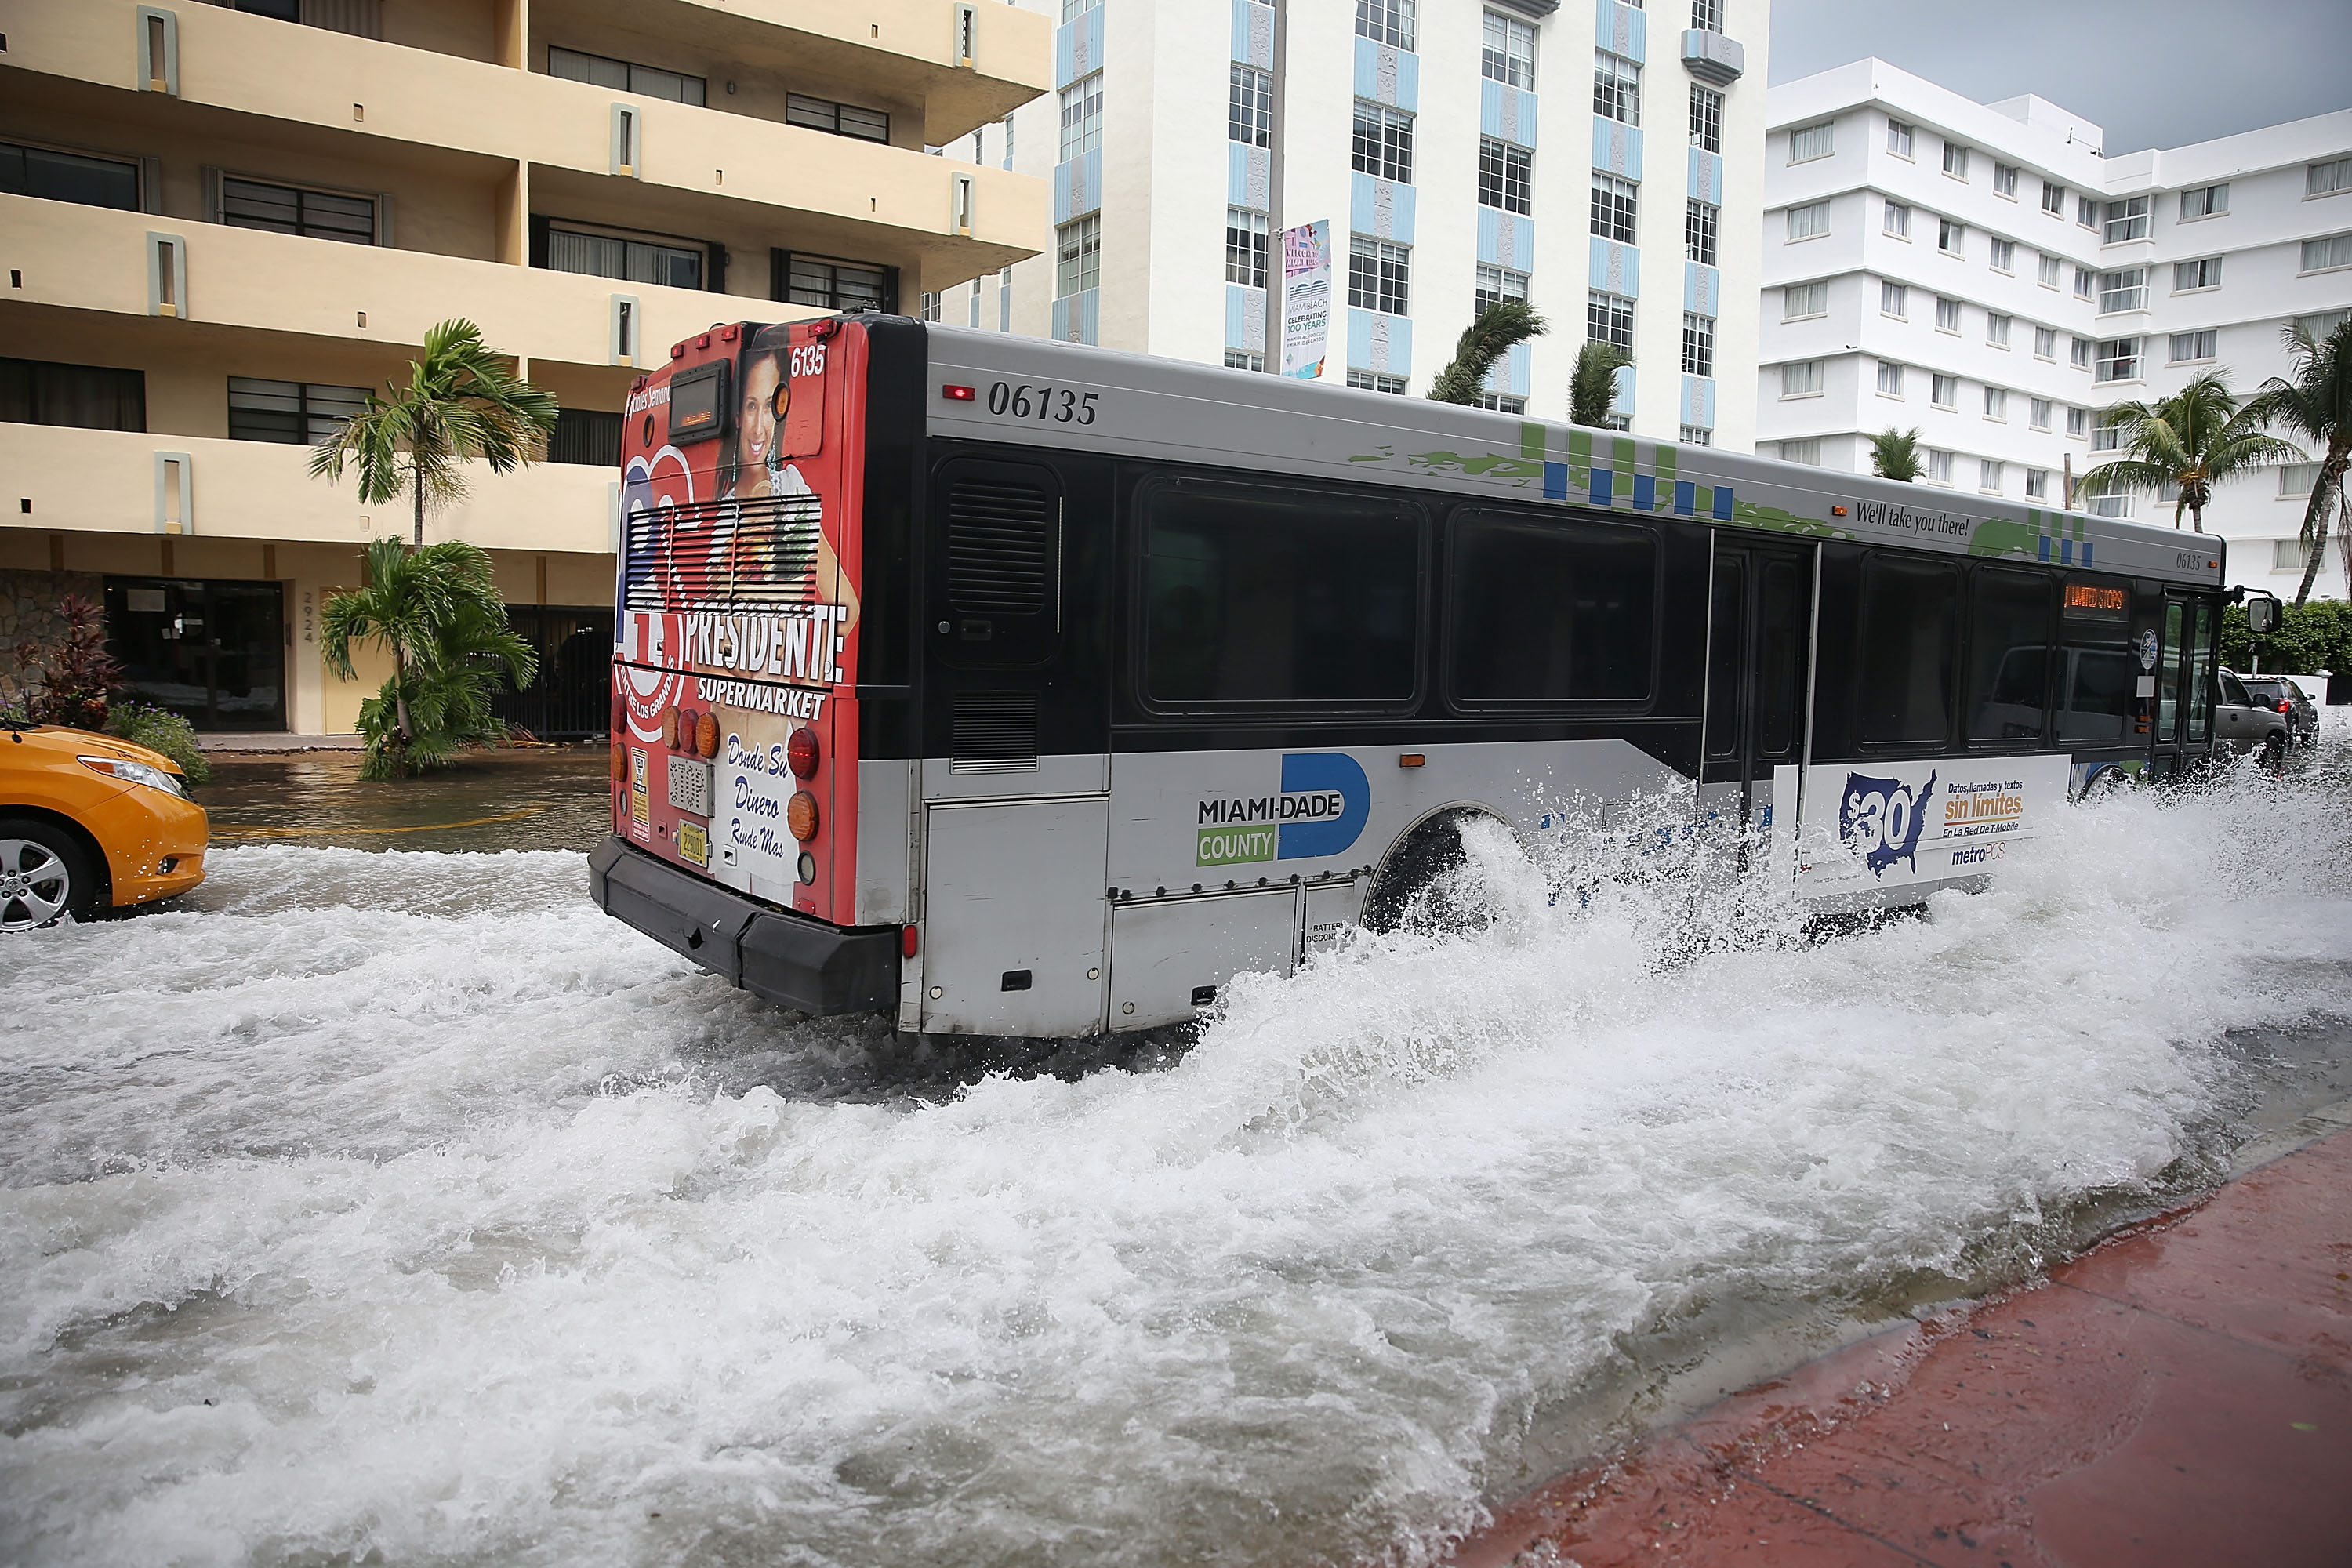 MIAMI BEACH, FL - SEPTEMBER 29: A bus plows through a flooded street that was caused by the combination of the lunar orbit which caused seasonal high tides and what many believe is the rising sea levels due to climate change on September 29, 2015 in Miami Beach, Florida. The City of Miami Beach is in the middle of a five-year, $400 million storm water pump program and other projects that city officials hope will keep the ocean waters from inundating the city as the oceans rise even more in the future. (Photo by Joe Raedle/Getty Images)